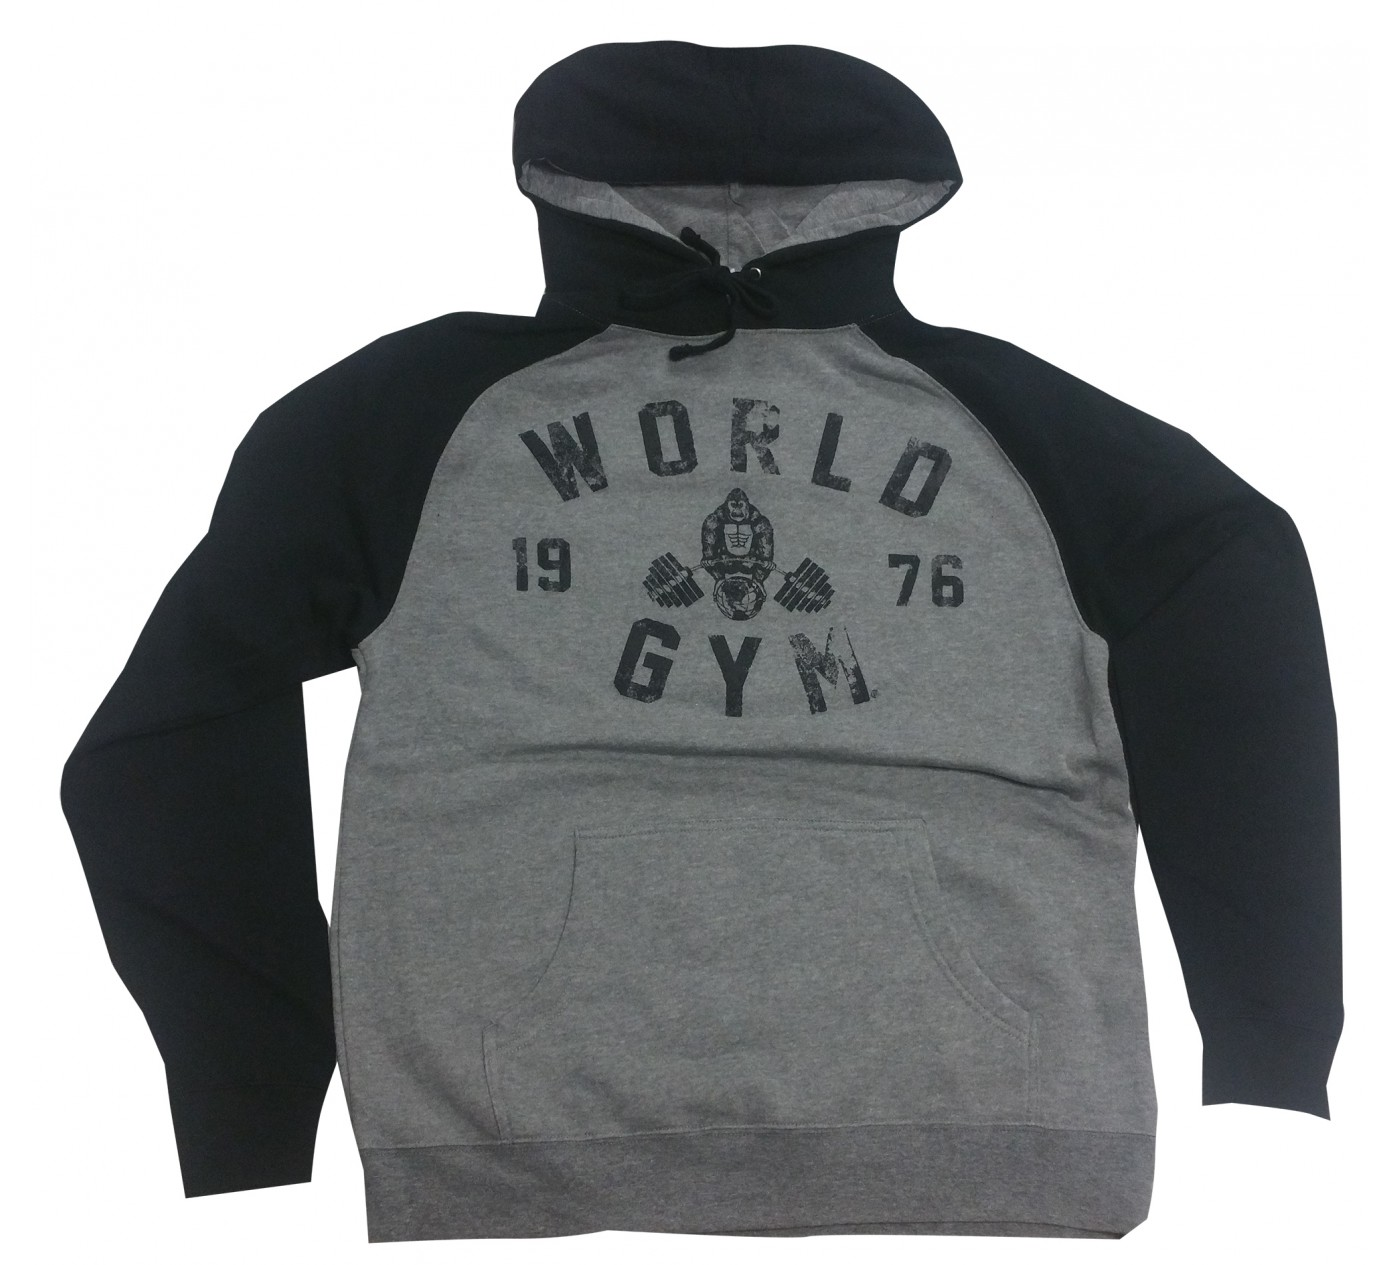 World Gym 76 Logo Workout Hoodie Grey